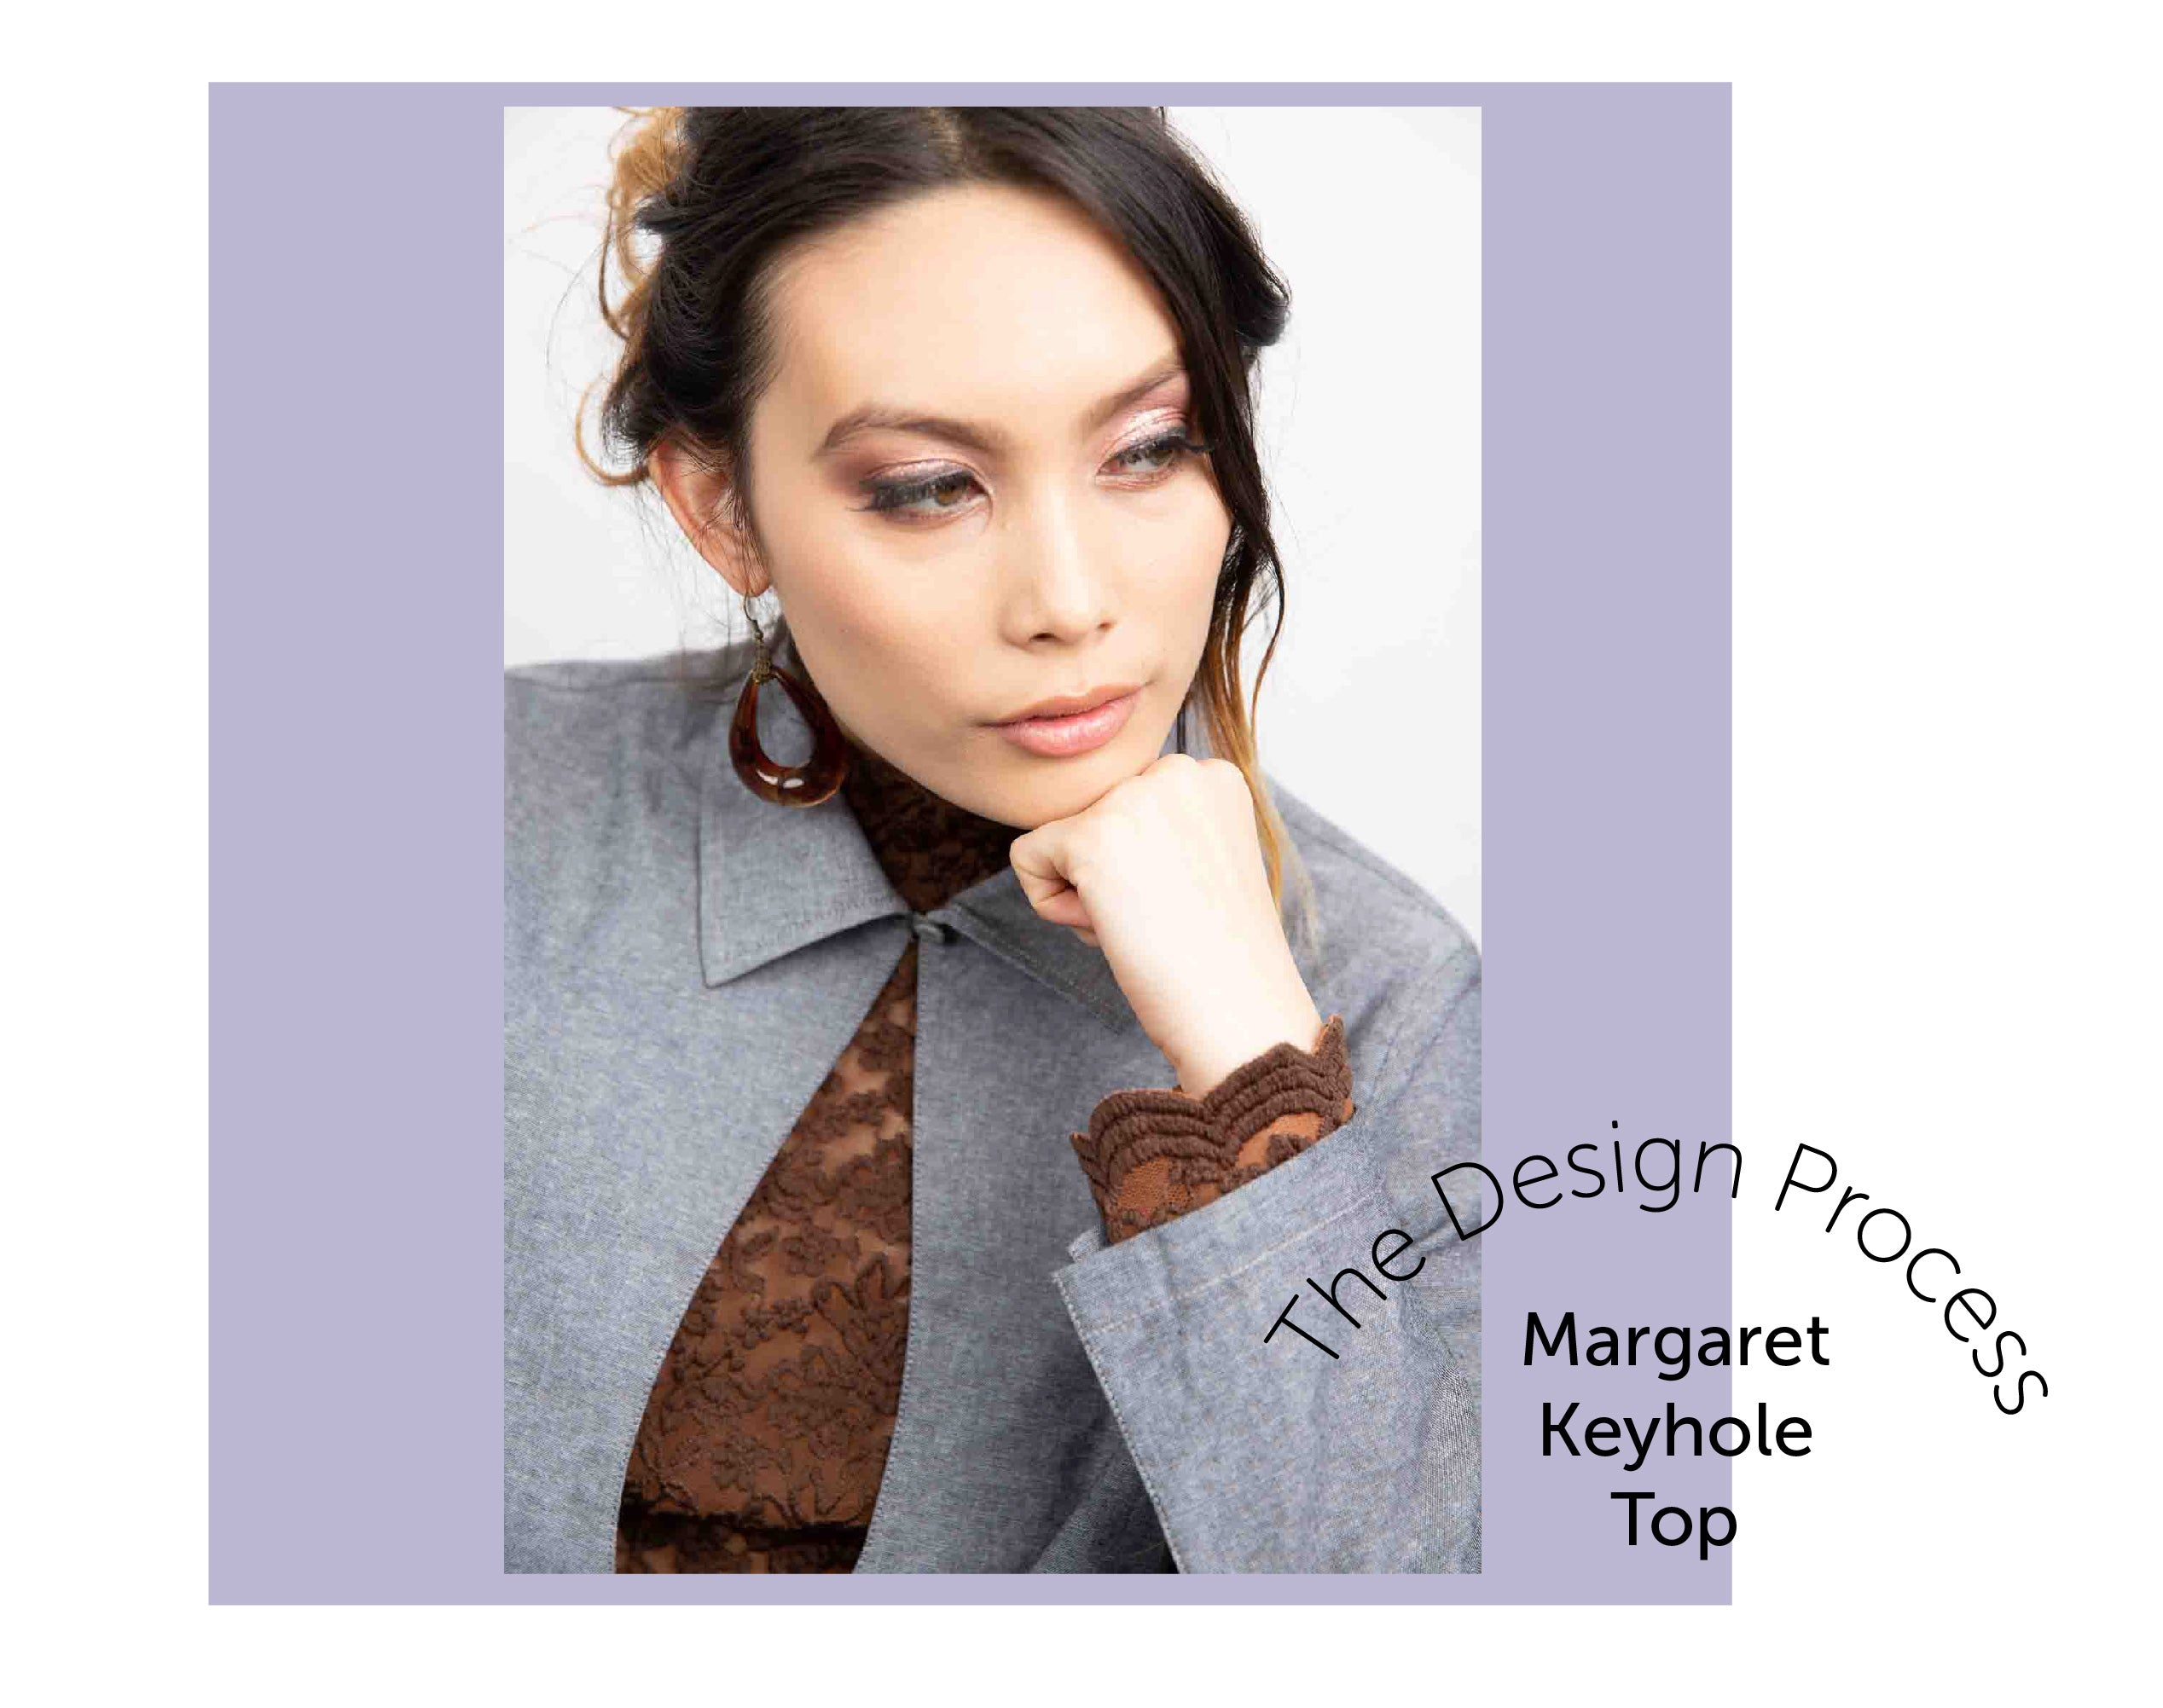 Behind the Scenes: The Margaret Keyhole Top